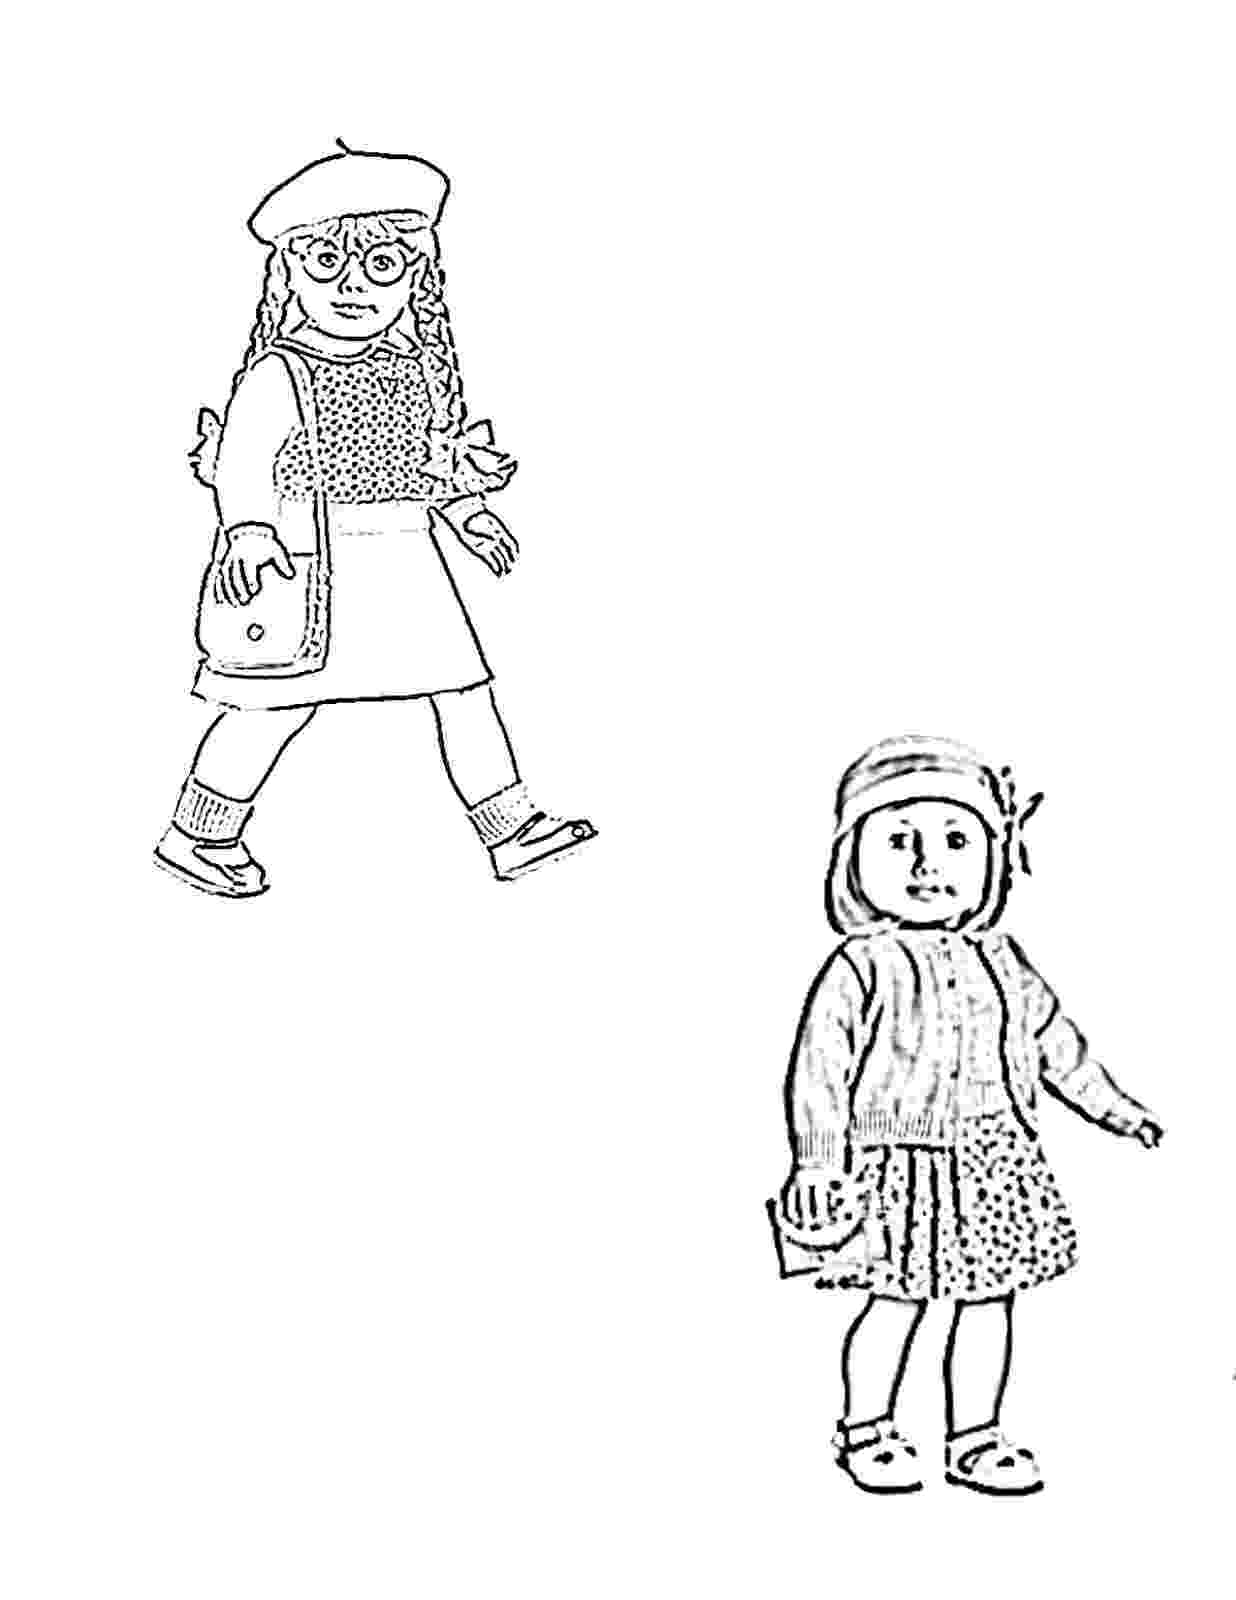 free printable american girl doll coloring pages doll coloring pages best coloring pages for kids pages girl american printable coloring free doll